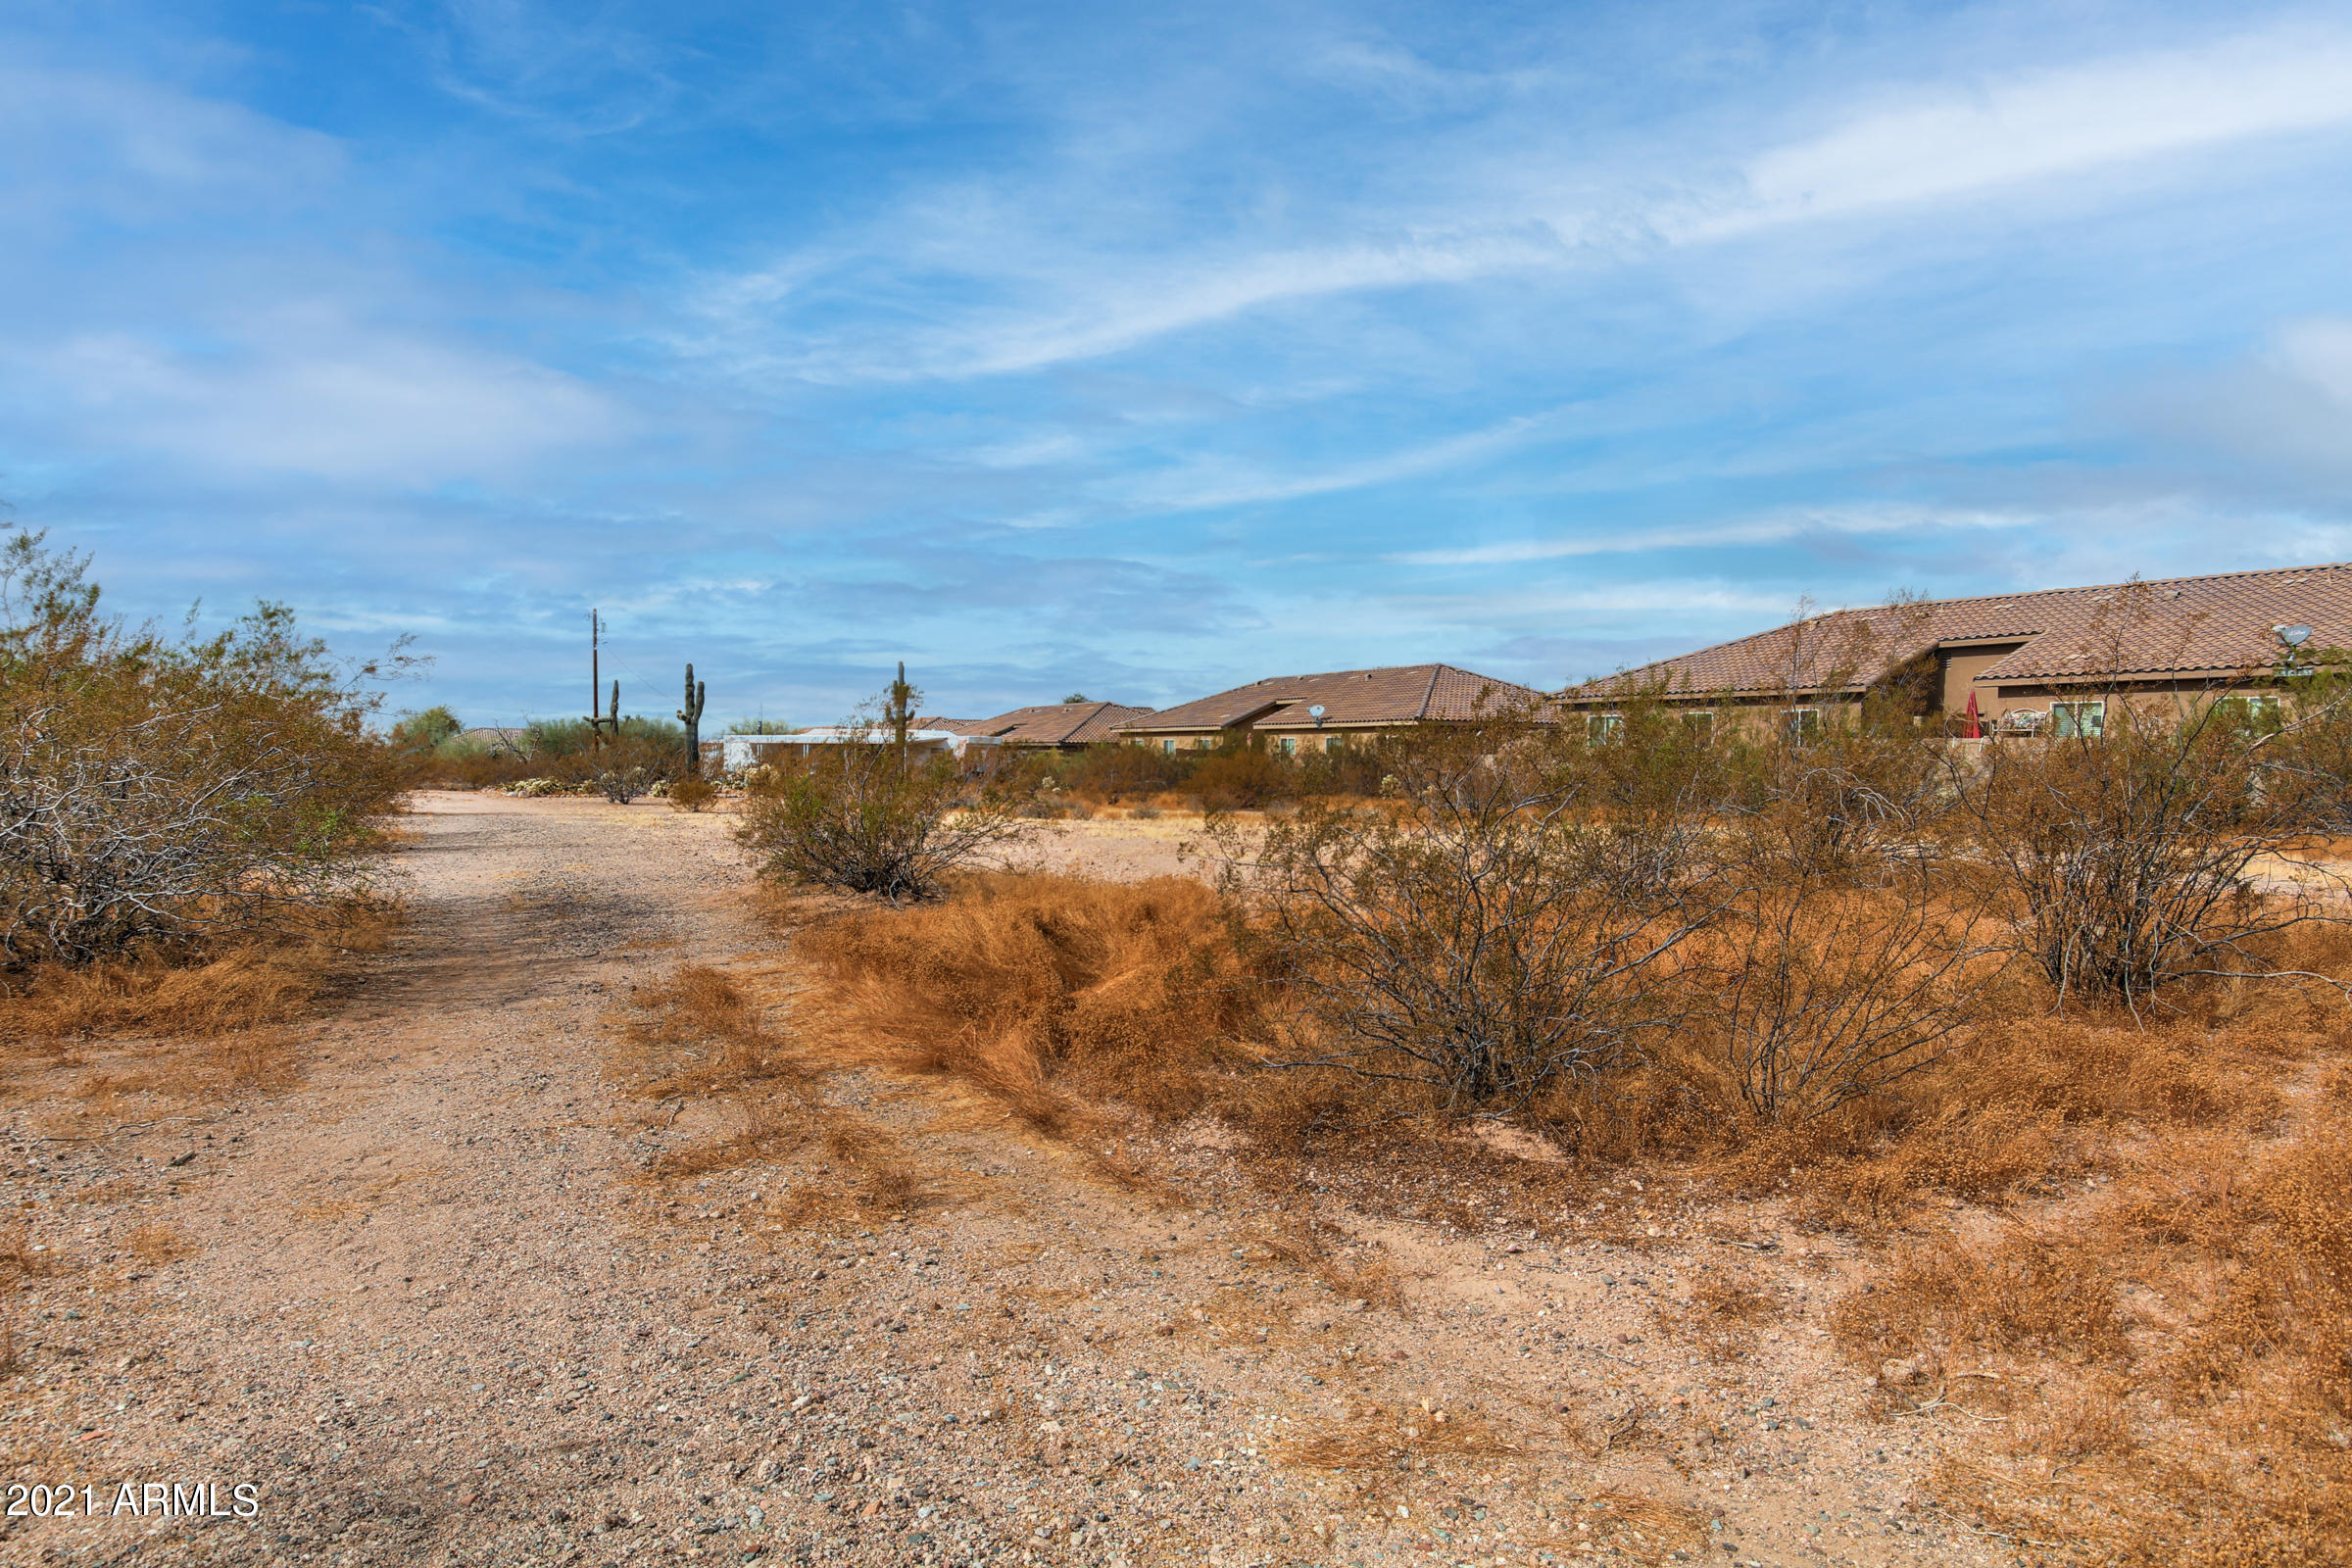 94 W Roundup Street # D, Apache Junction, AZ 85120, ,Land,For Sale,94 W Roundup Street # D,6185519